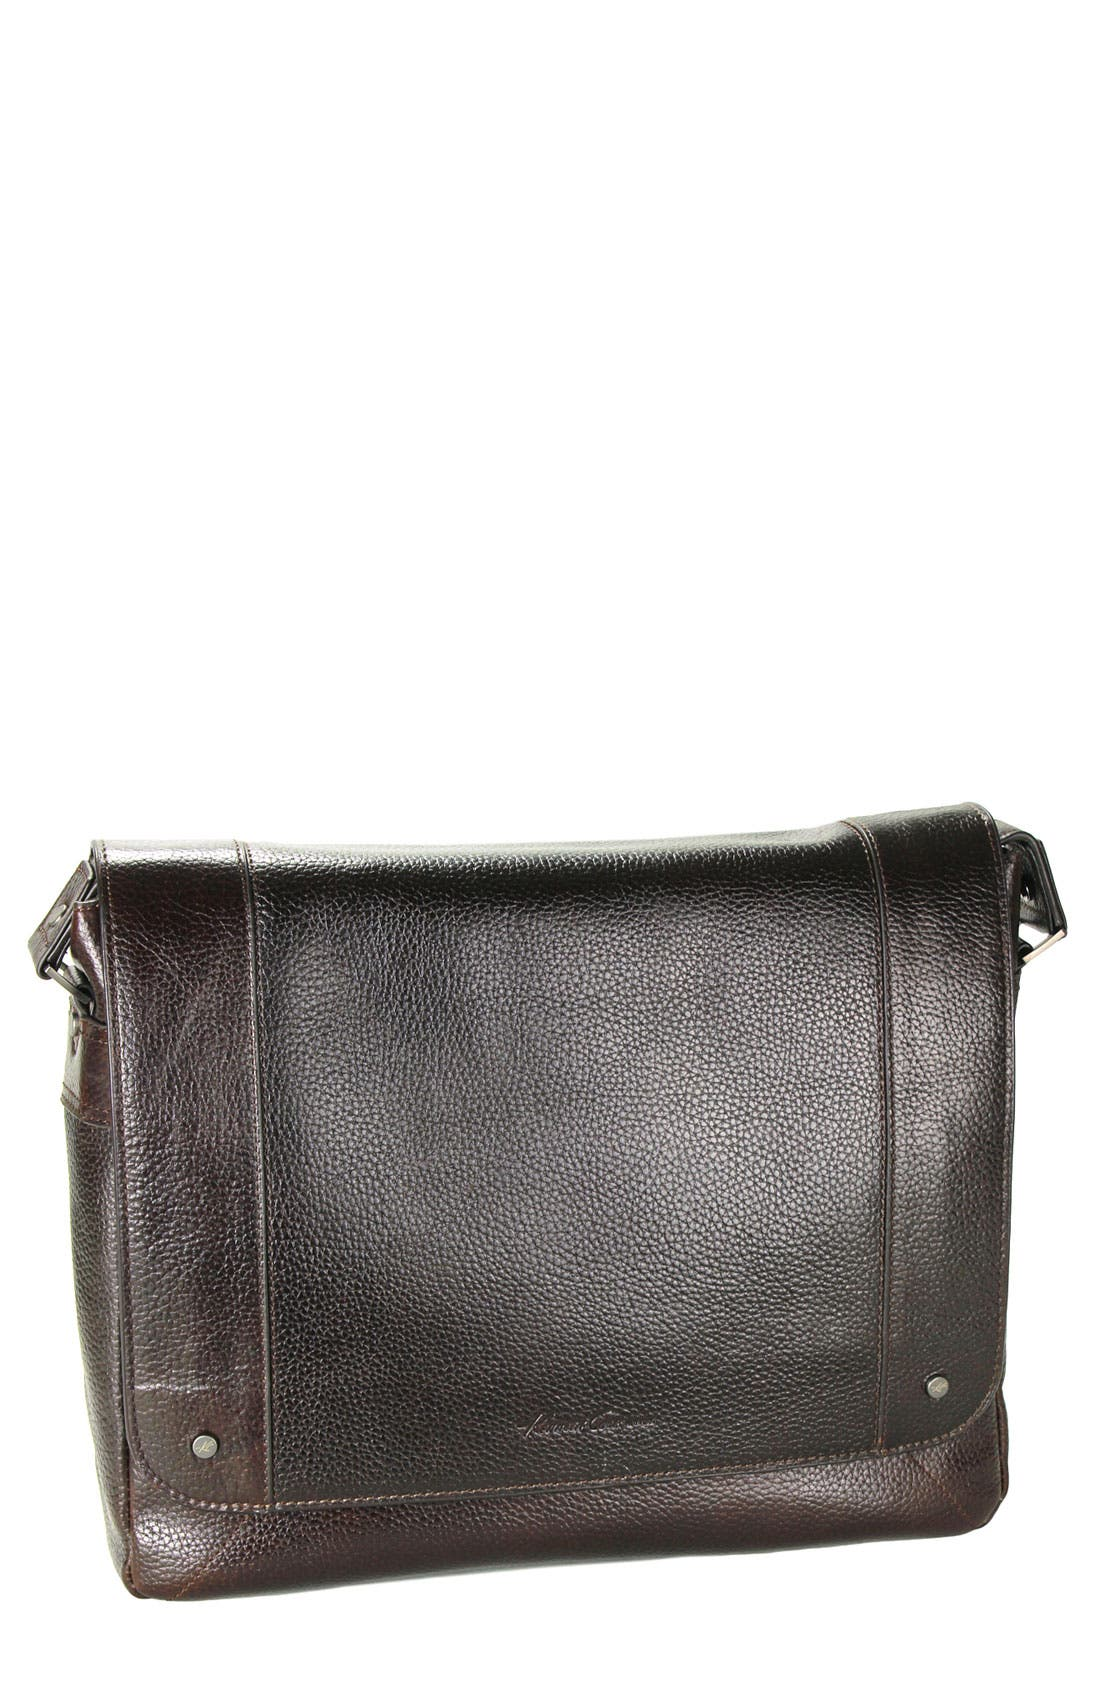 Main Image - Kenneth Cole New York 'Heritage' Leather Messenger Bag